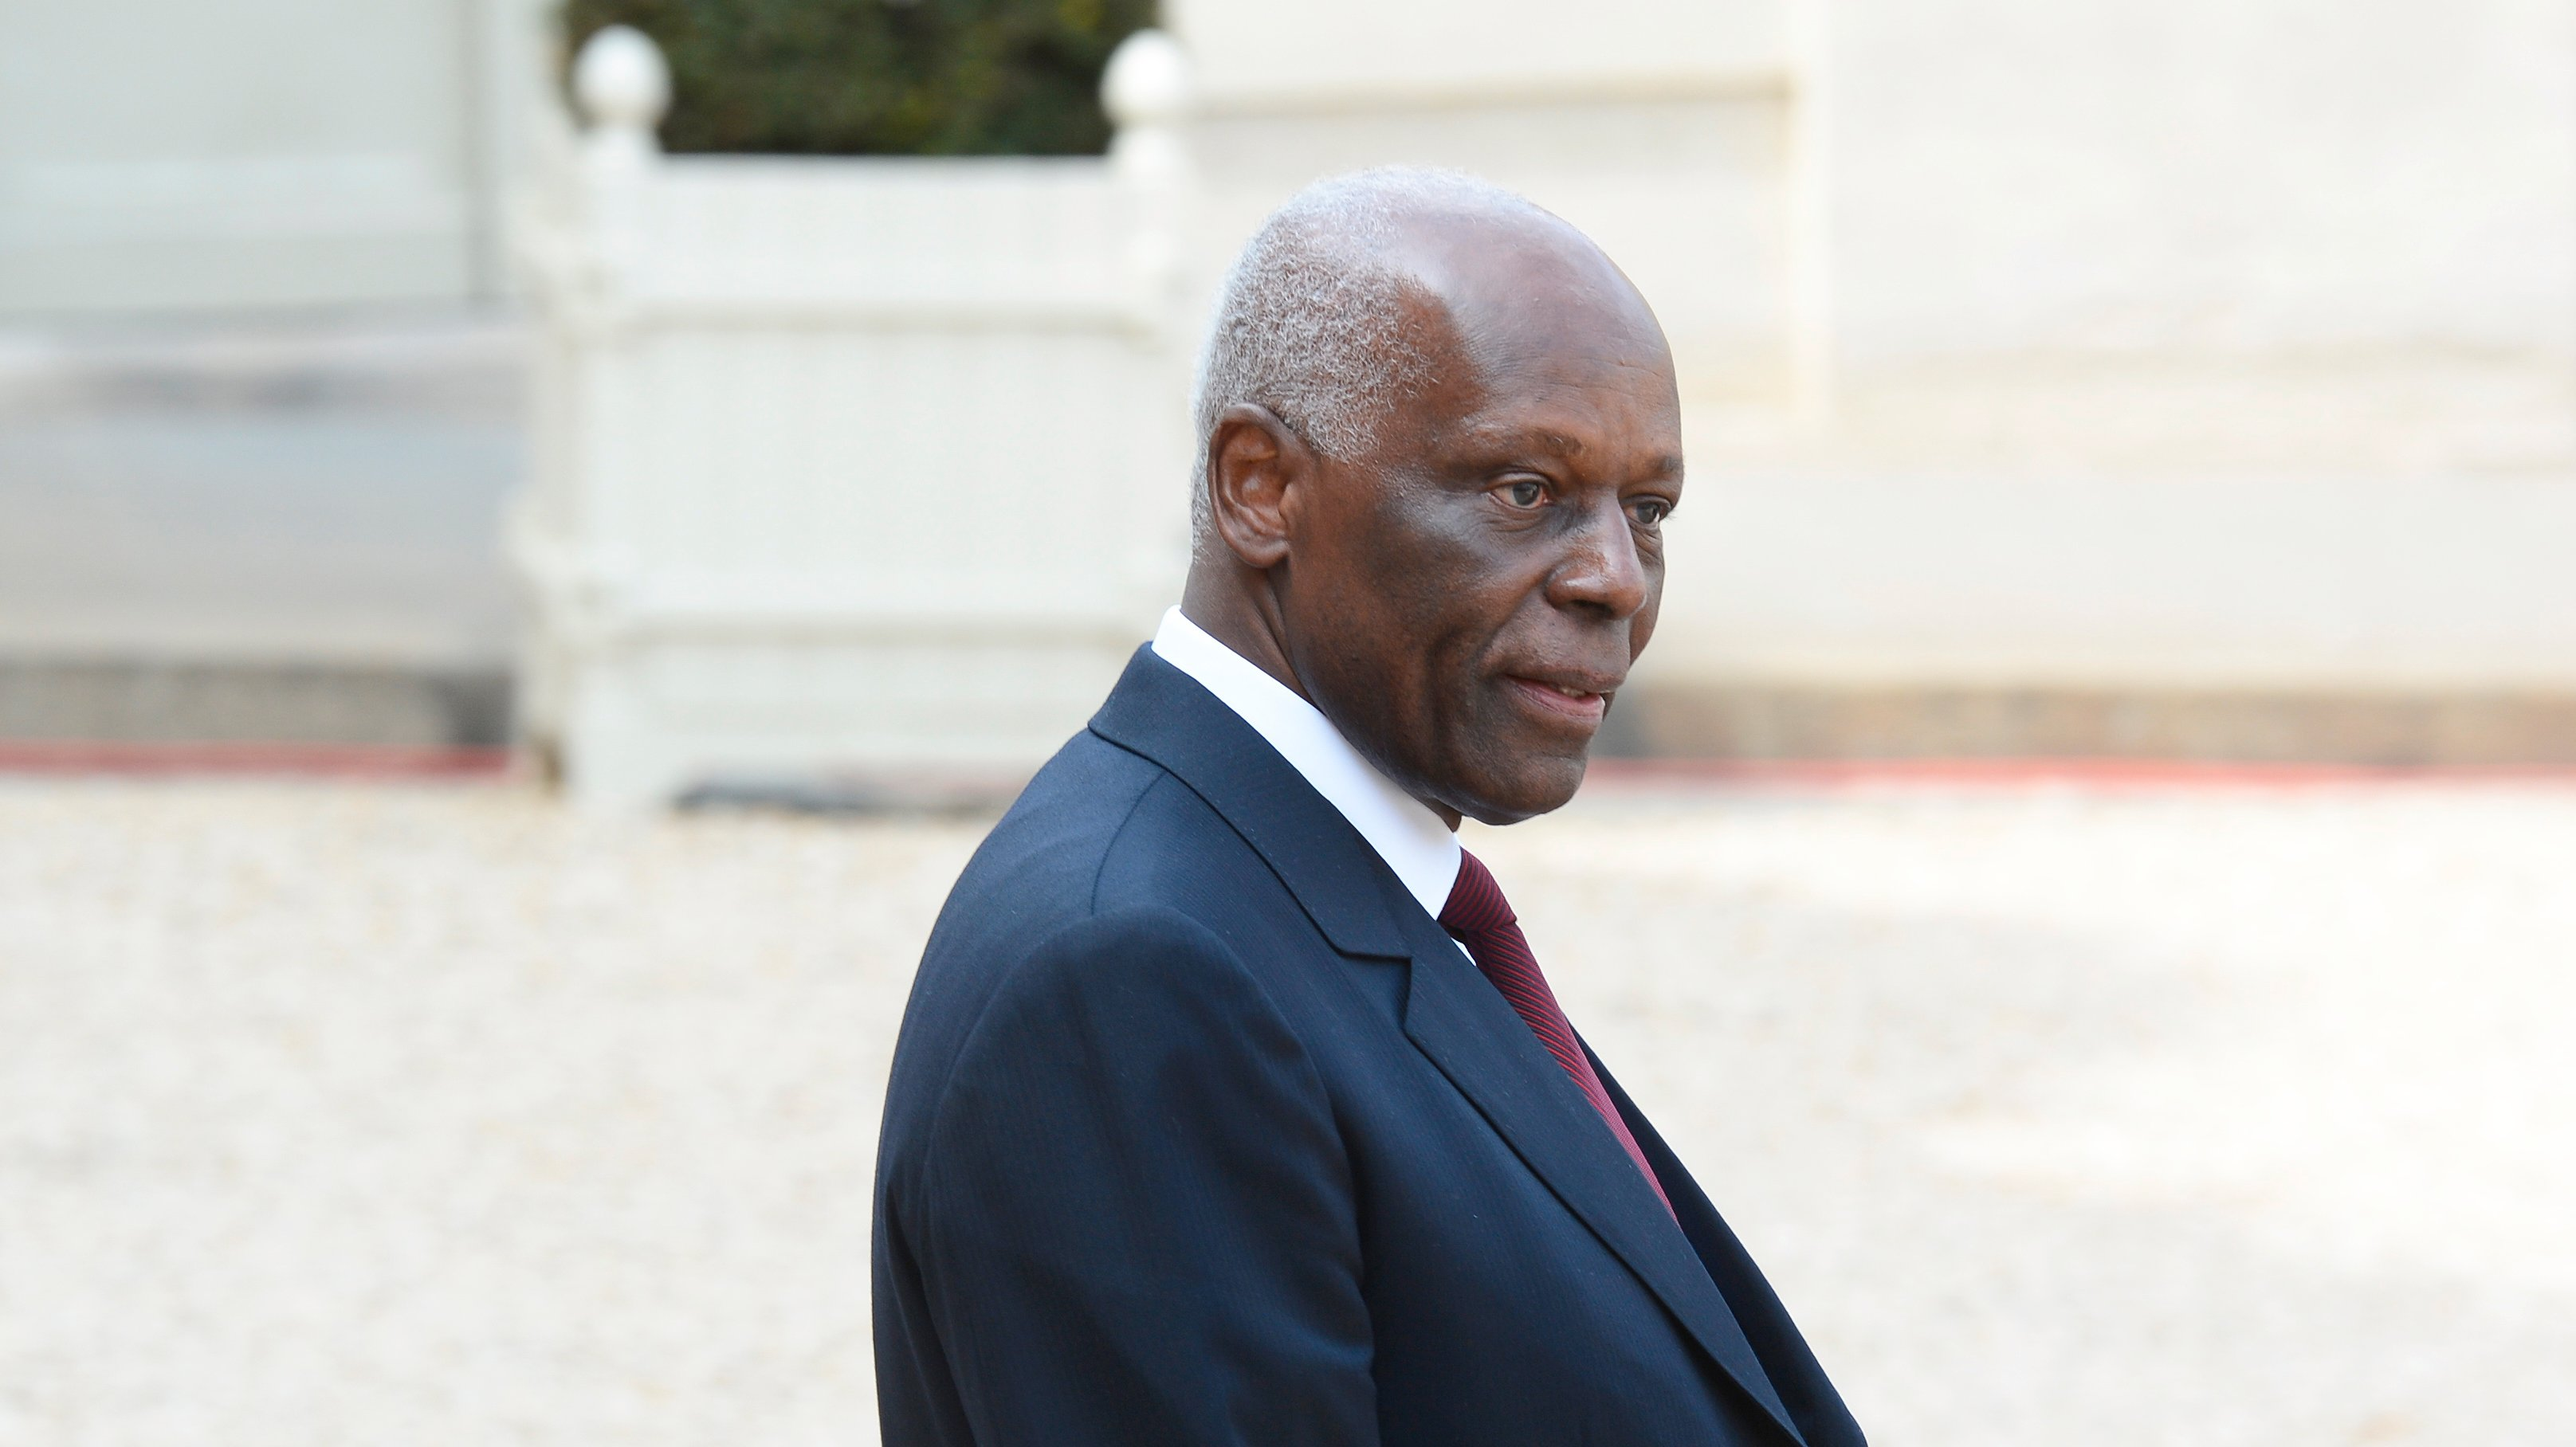 Angola President meets with President Hollande